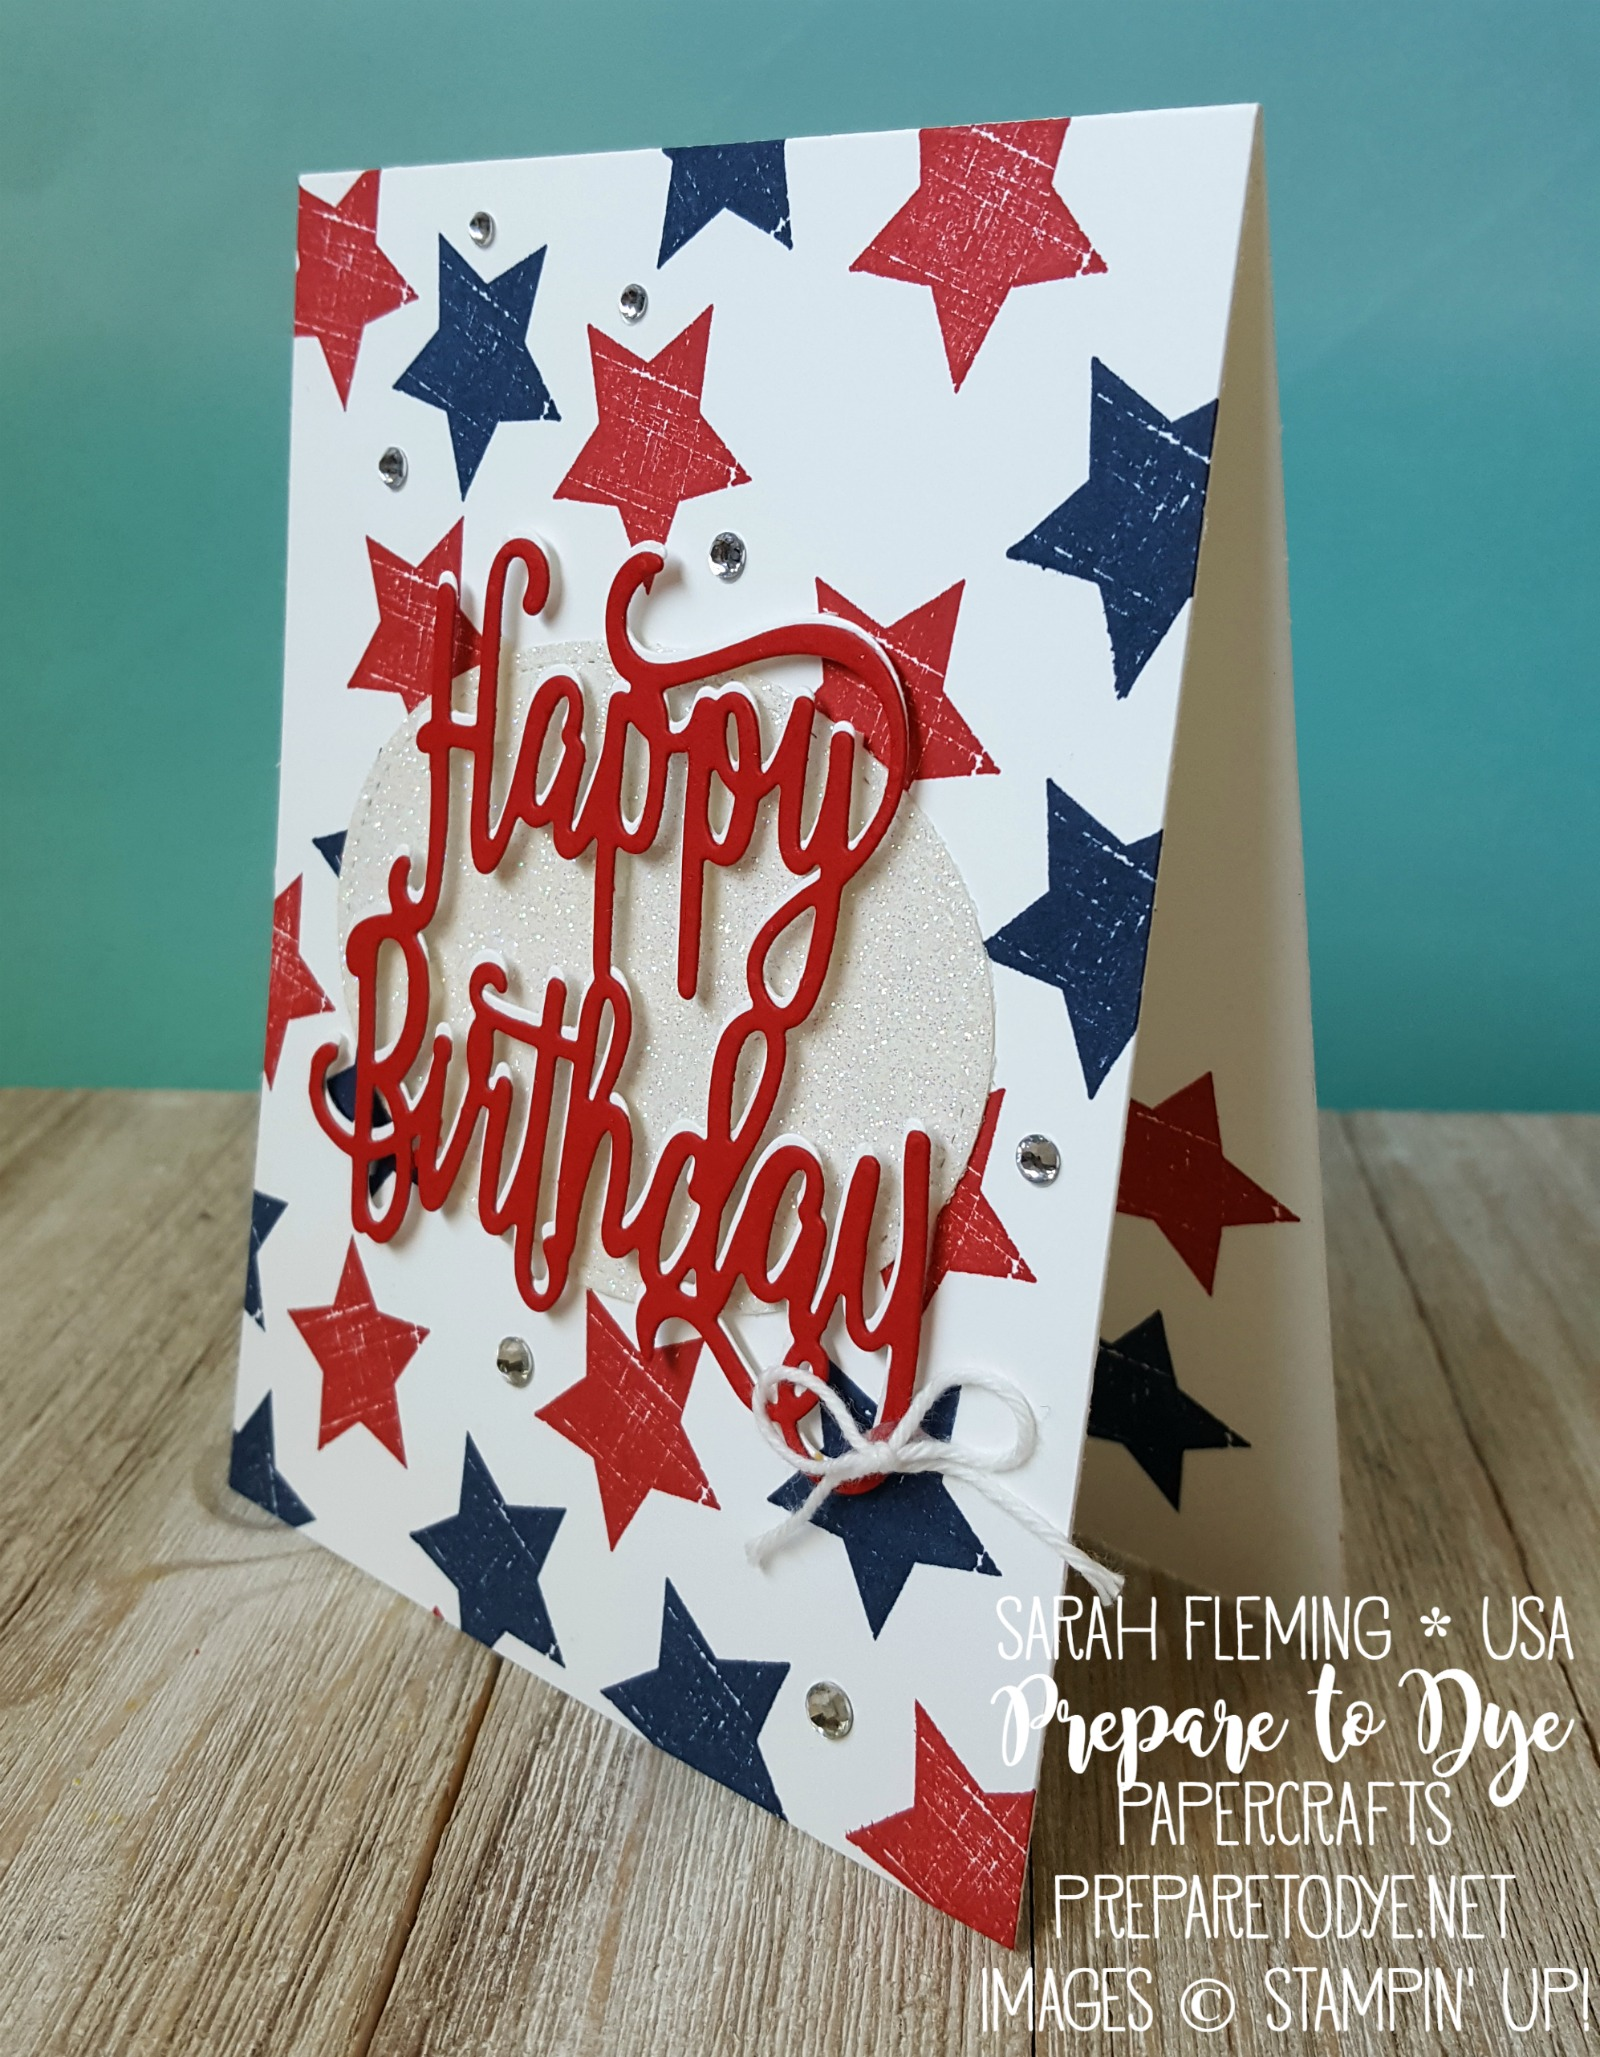 Stampin' Up! Happy Birthday thinlit with Wood Words stamps - July handmade birthday card - Sarah Fleming - Prepare to Dye Papercrafts